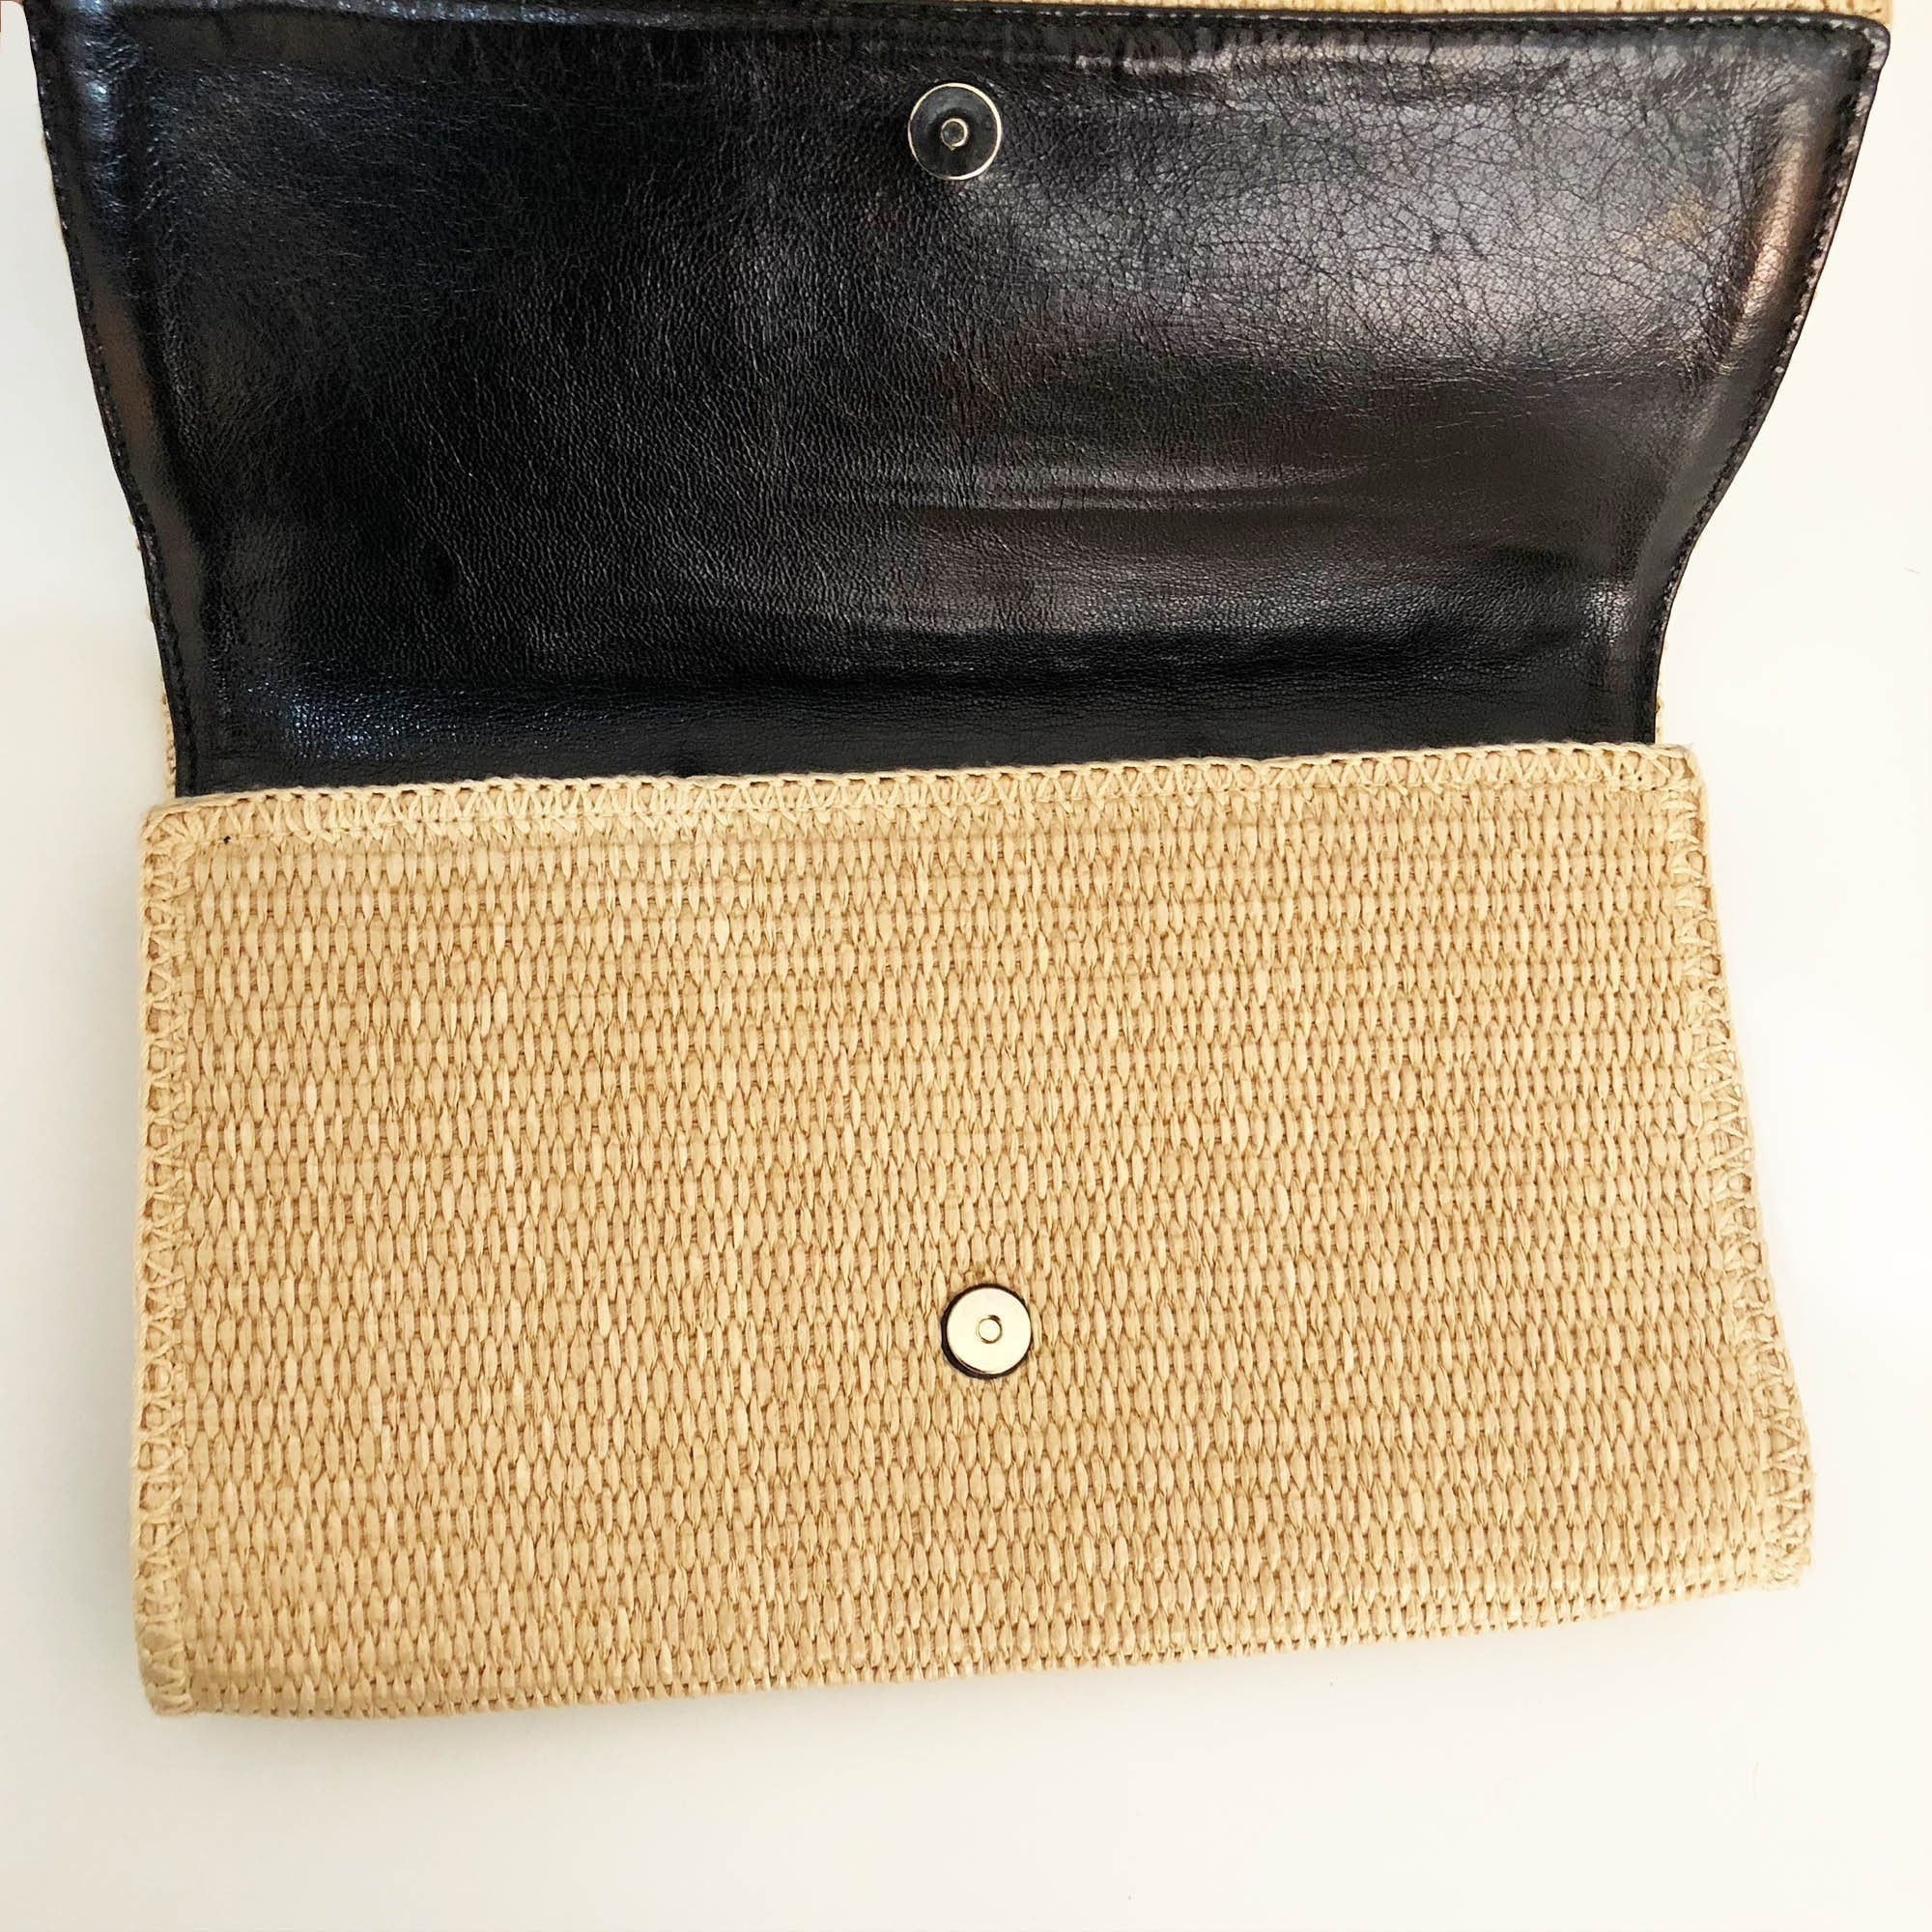 Yves Saint Laurent  Sac de Jou Cane Clutch